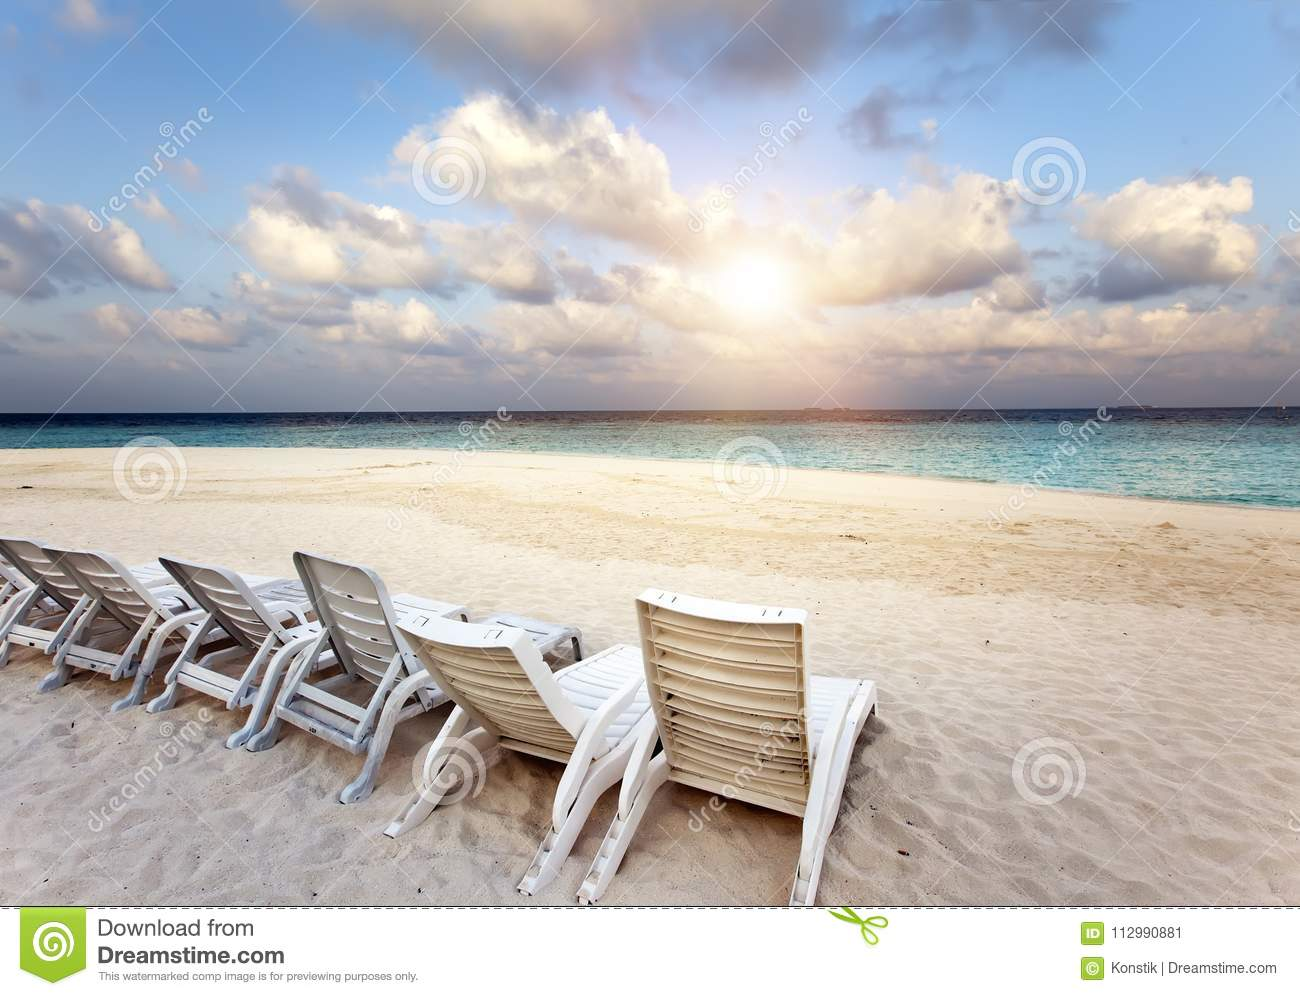 Beach lounge chairs on a beautiful tropical sand beach with cloudy blue sky. Maldives